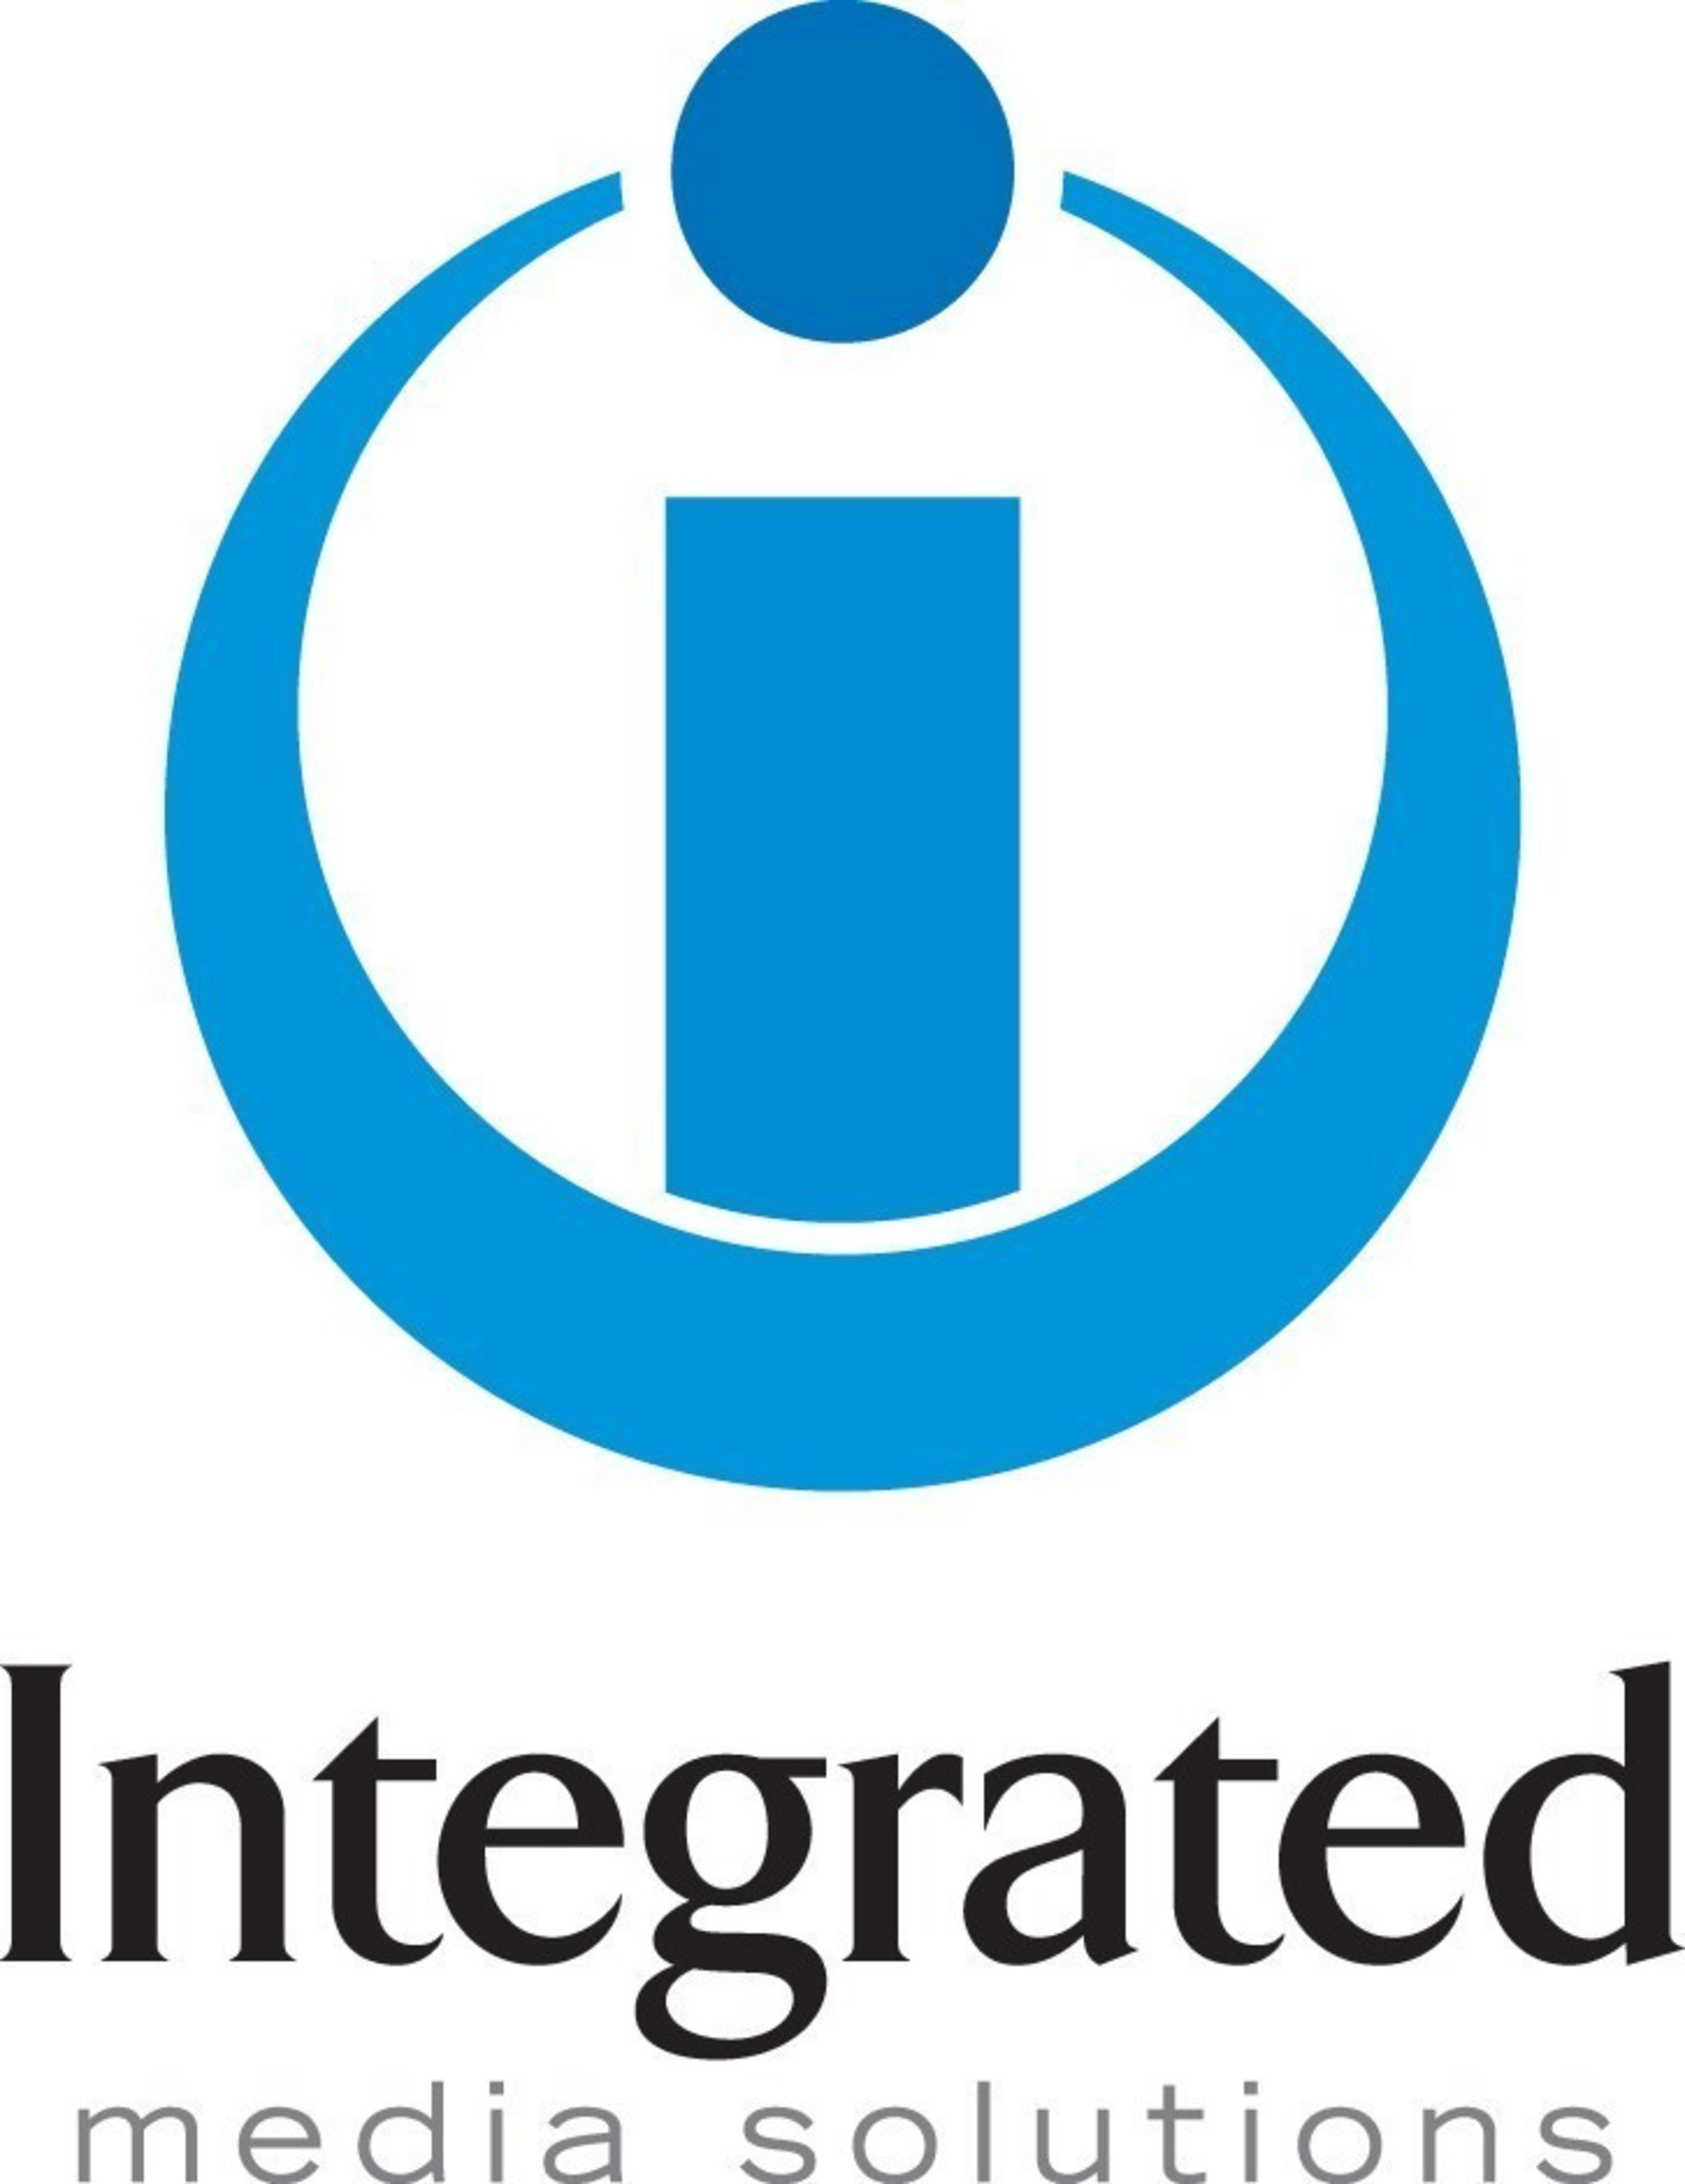 Integrated Media Solutions LLC (IMS) is the parent company of Dental Product Shopper, an award-winning print and digital platform for the dental profession, located in Manalapan, New Jersey.